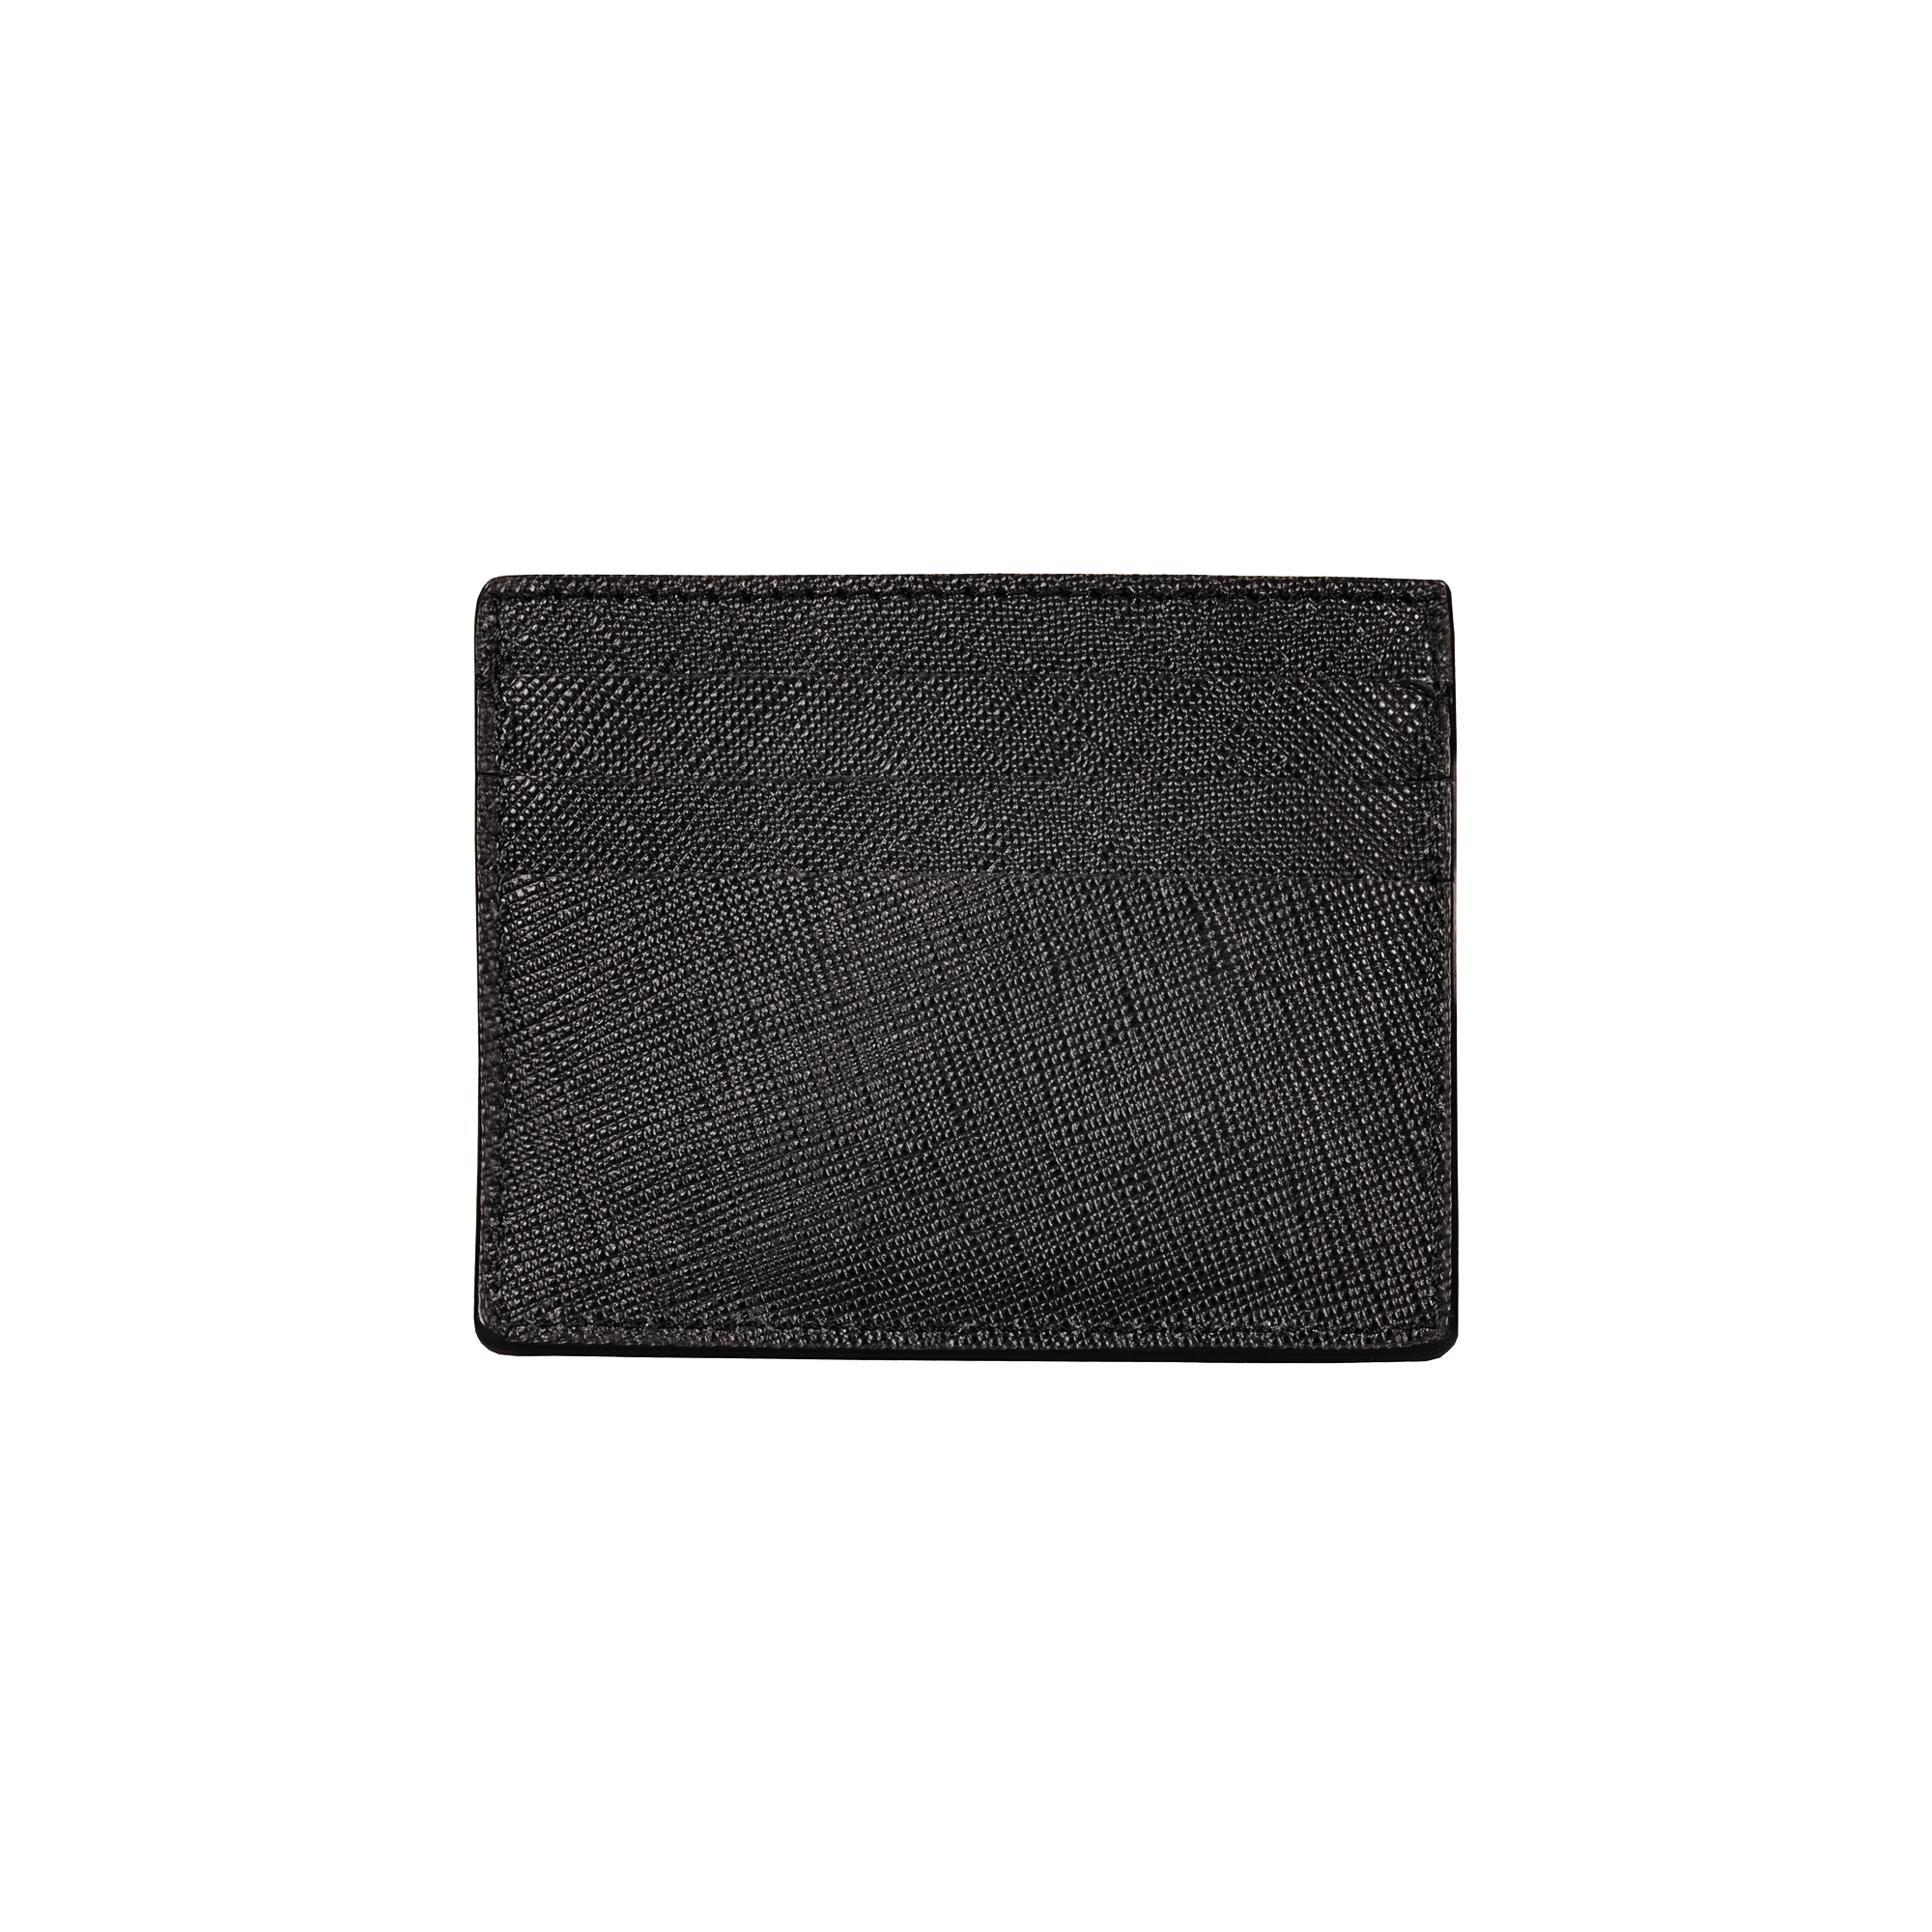 Card Holder - 6 Slots, Saffiano Leather Black/Black, MAISON JMK-VONMEL Luxe Gifts